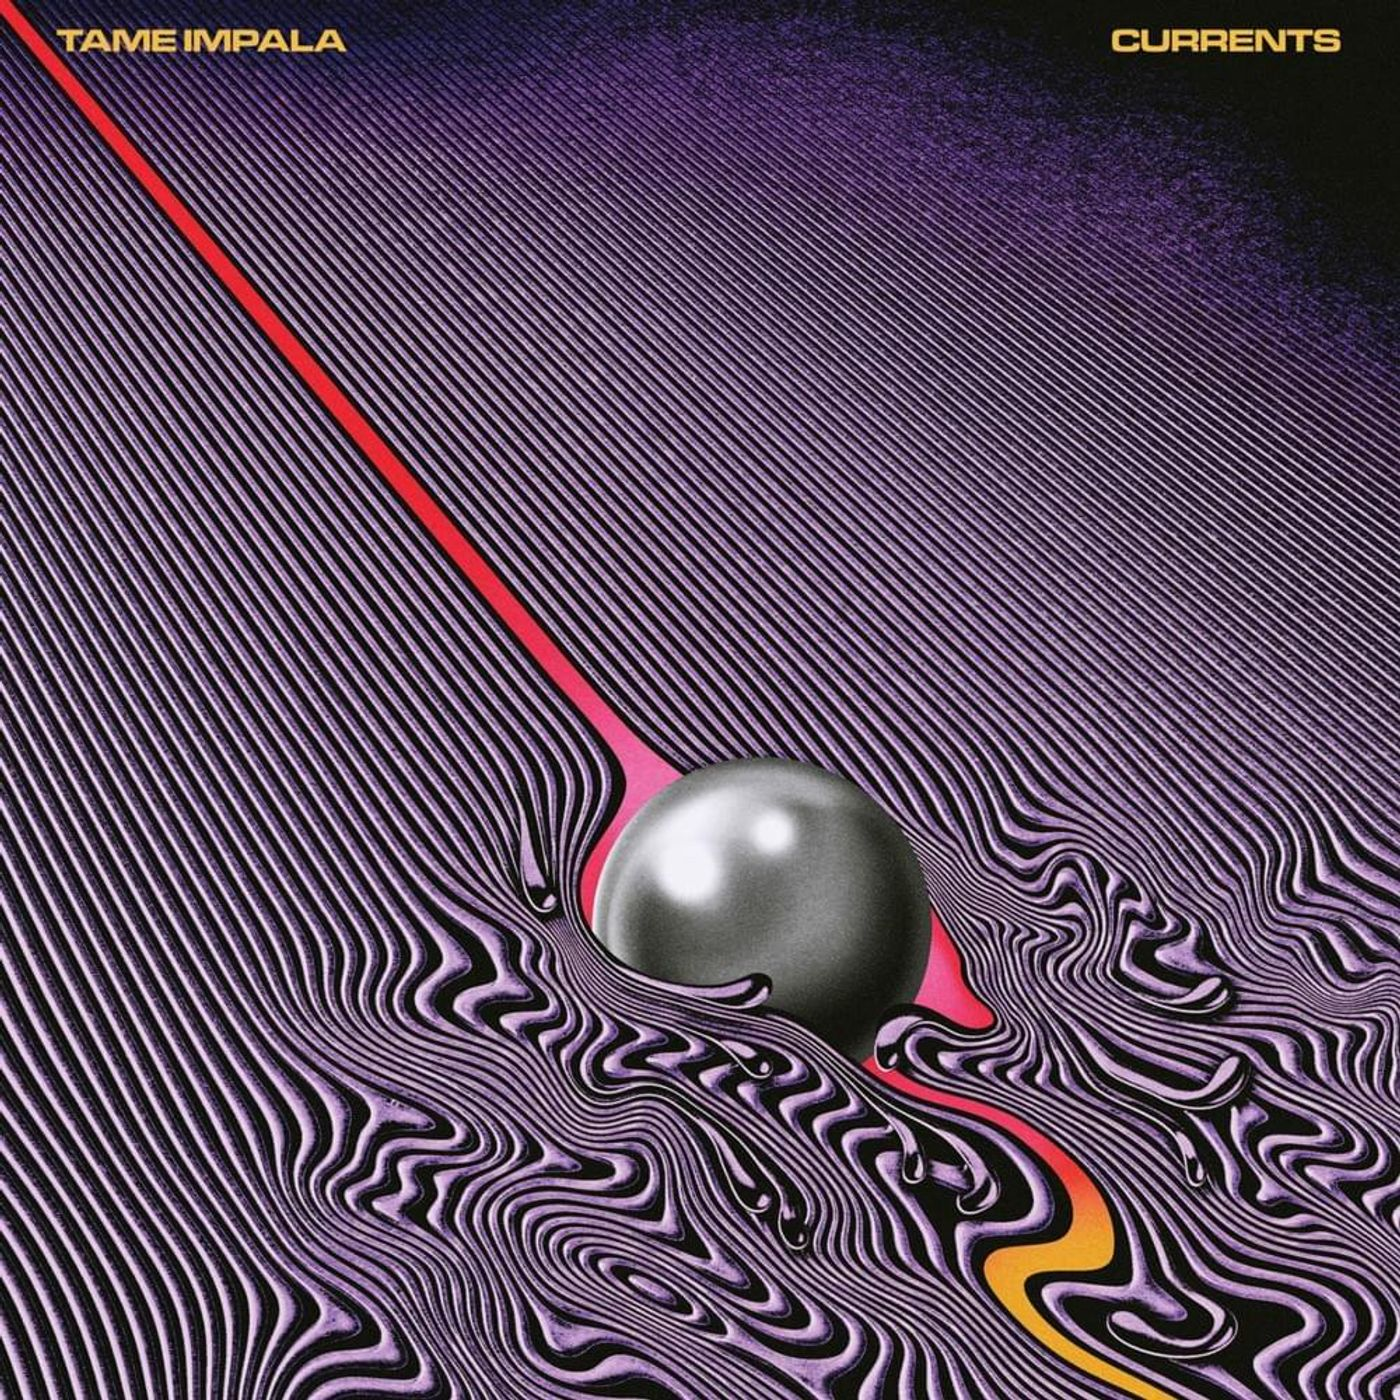 Currents: Tame Impala with Jess Byard